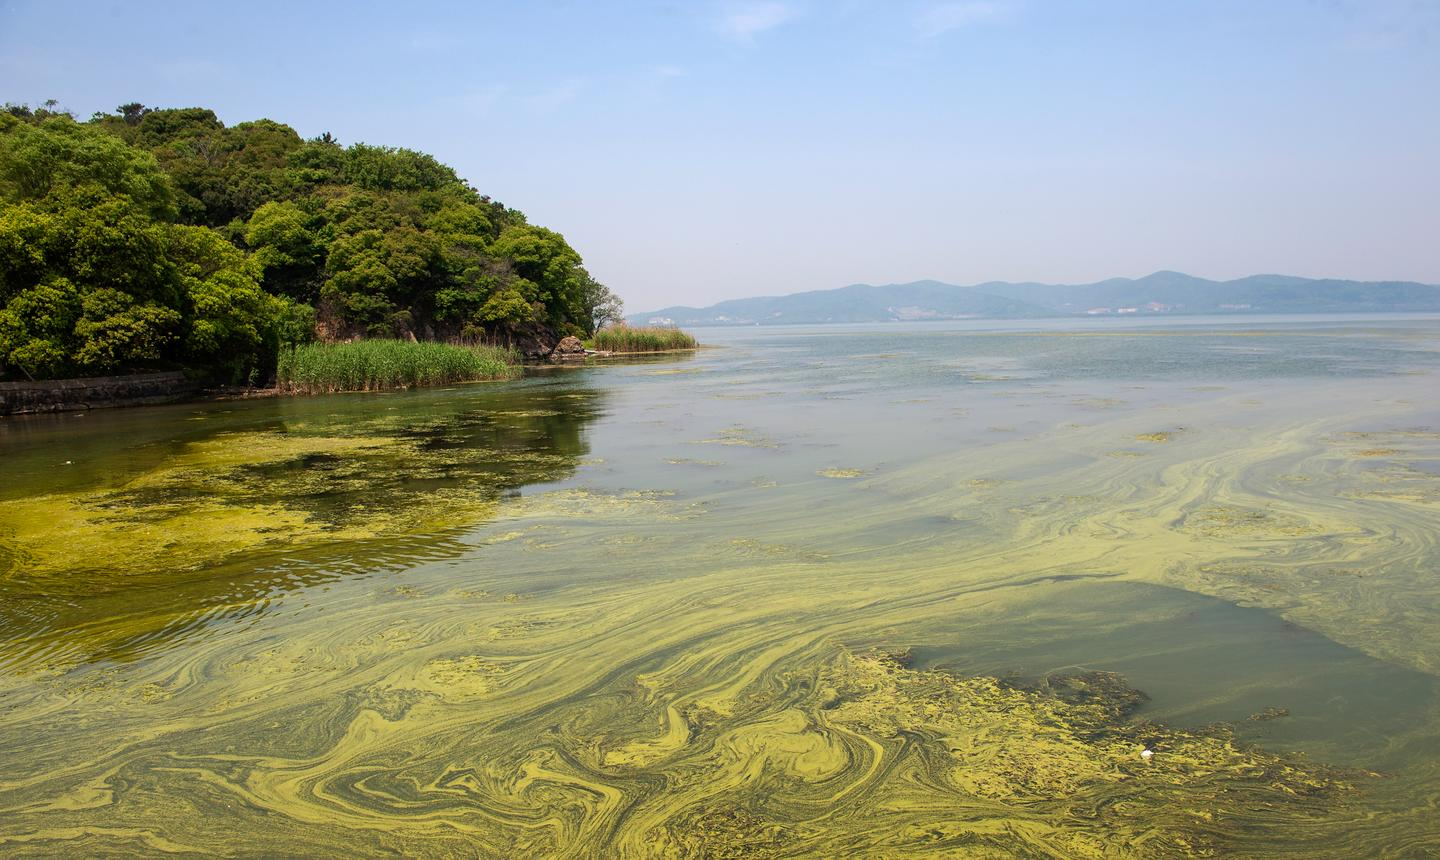 An algae bloom in China's Taihu lake